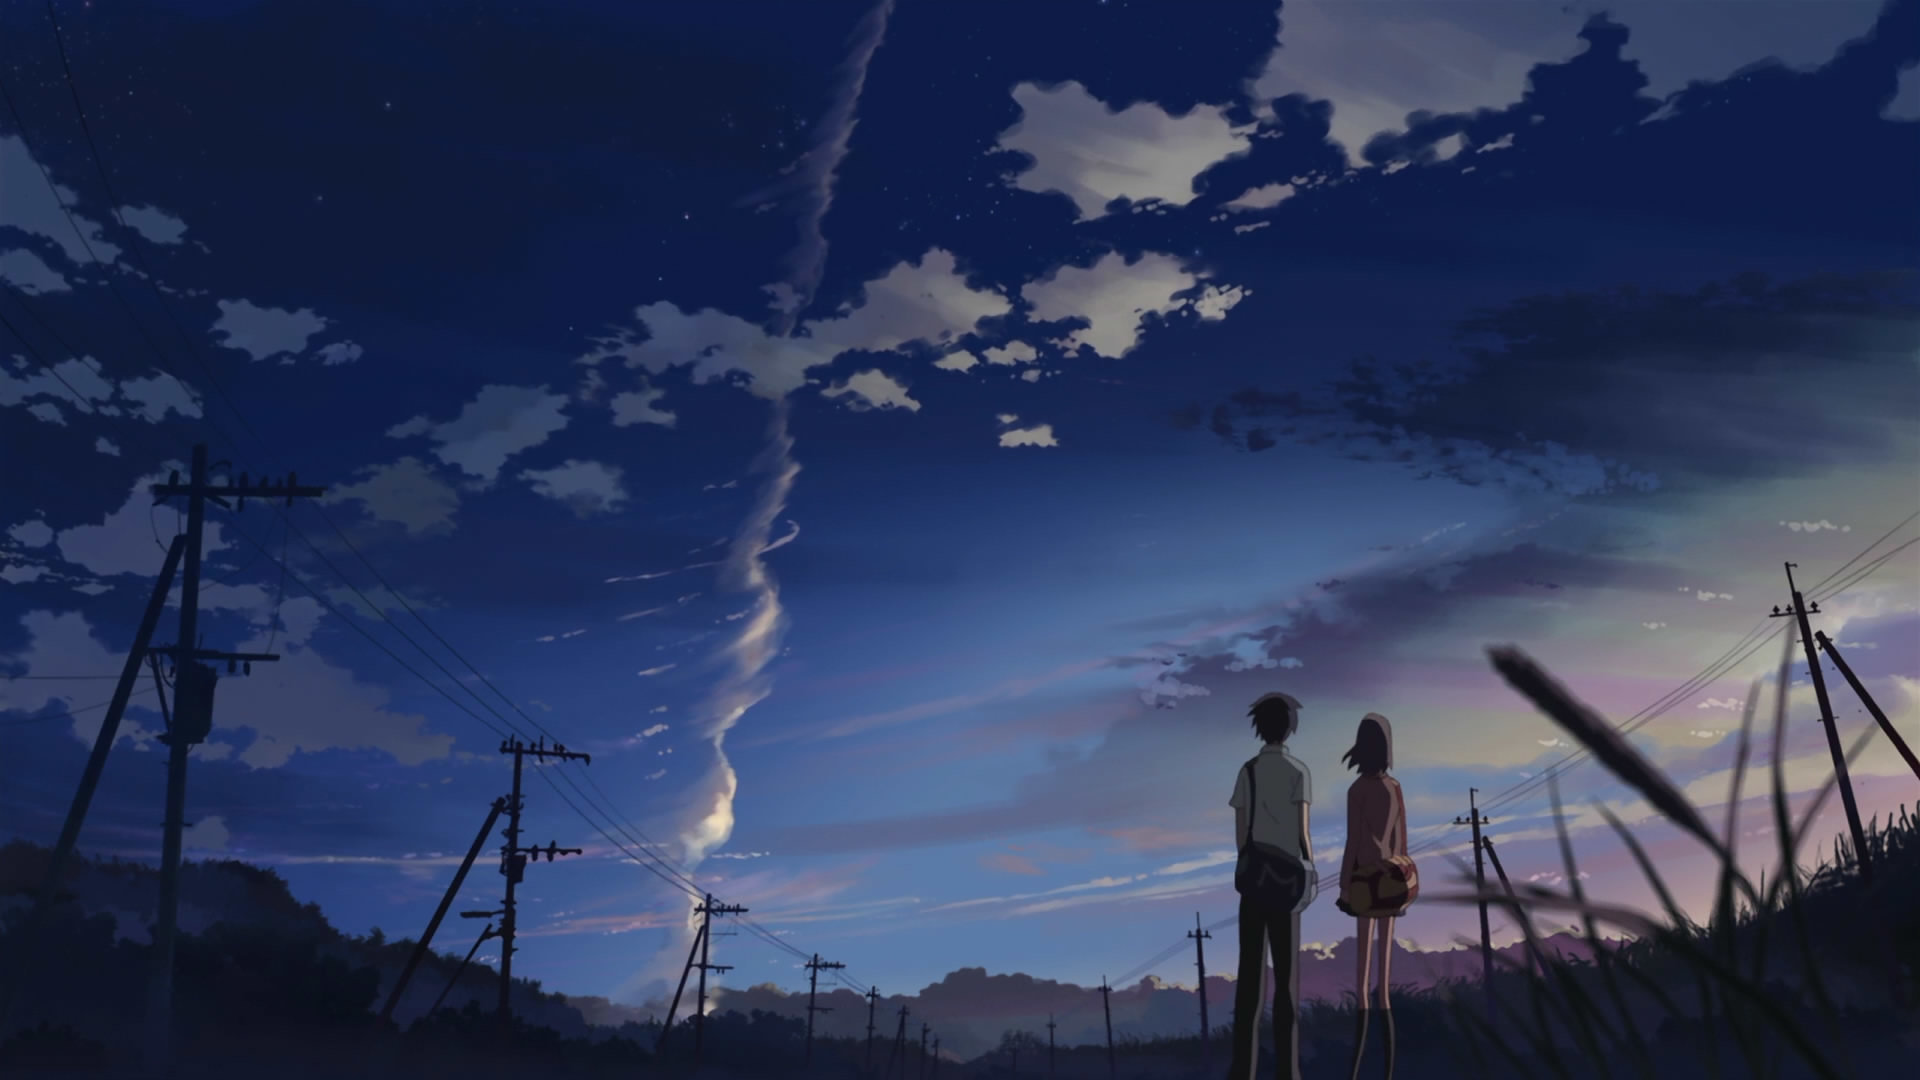 Download full hd 1920x1080 5 (cm) Centimeters Per Second desktop wallpaper ID:90051 for free